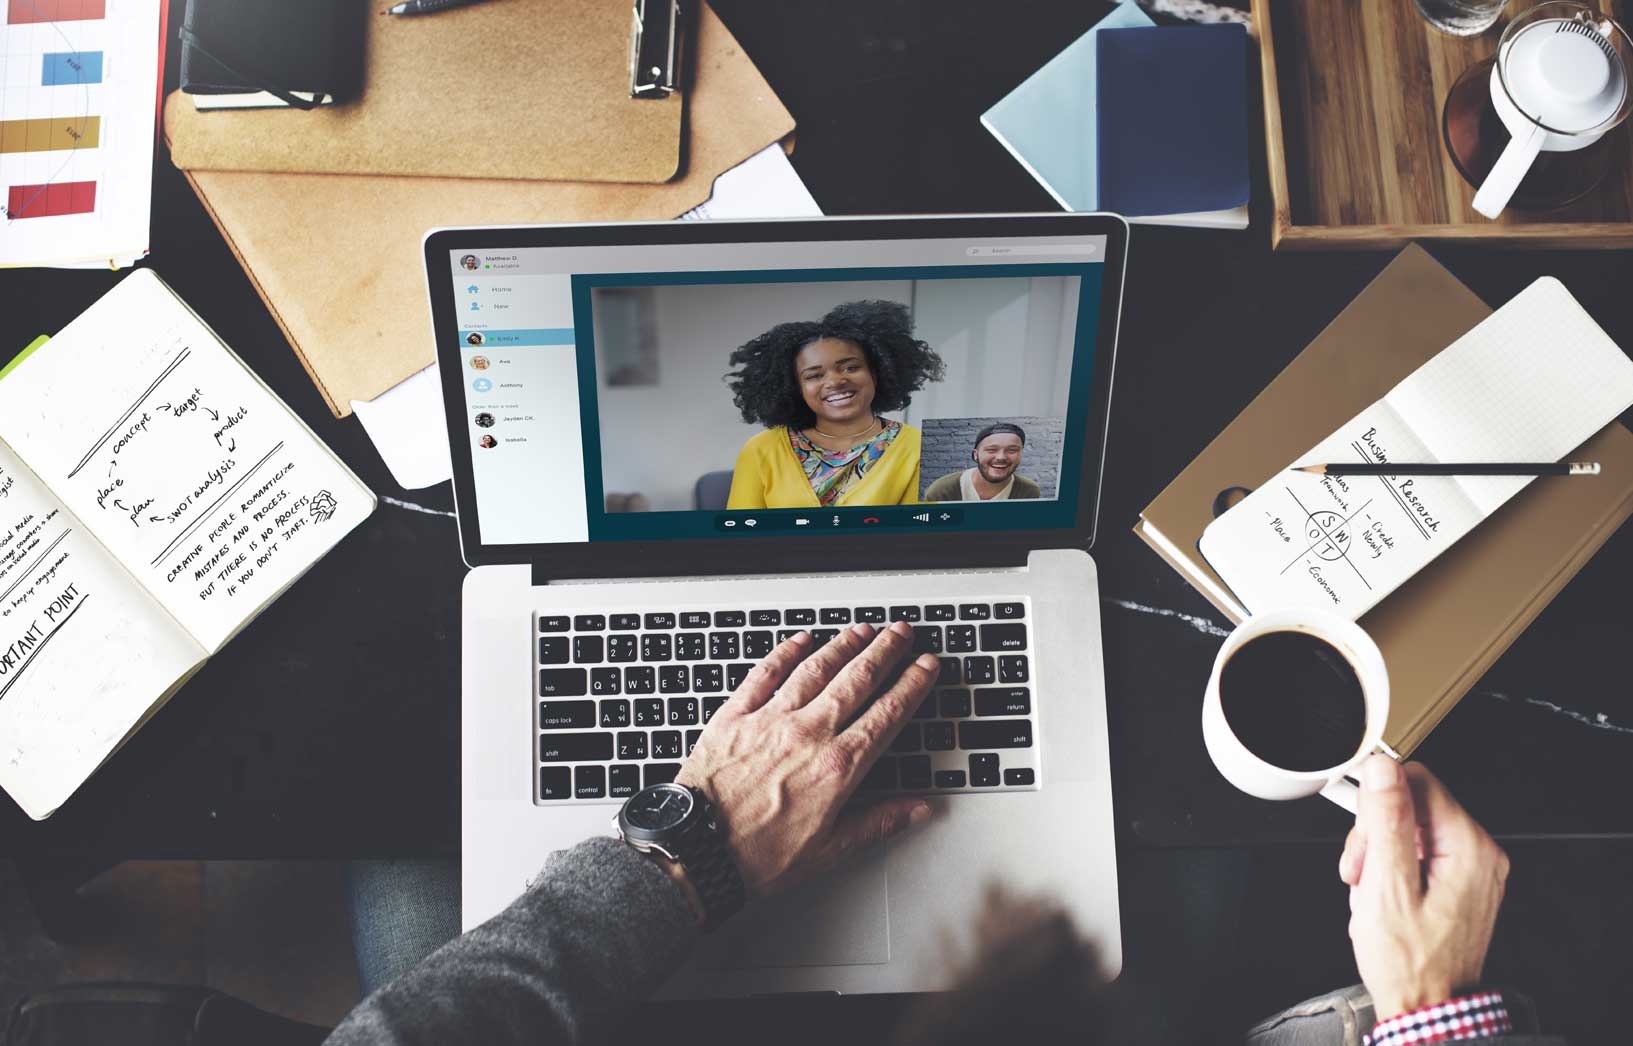 Video as customer support is a deceptively demanding channel. And because it's relatively early on in the gestation, many businesses haven't figured out how to use video to its full potential.